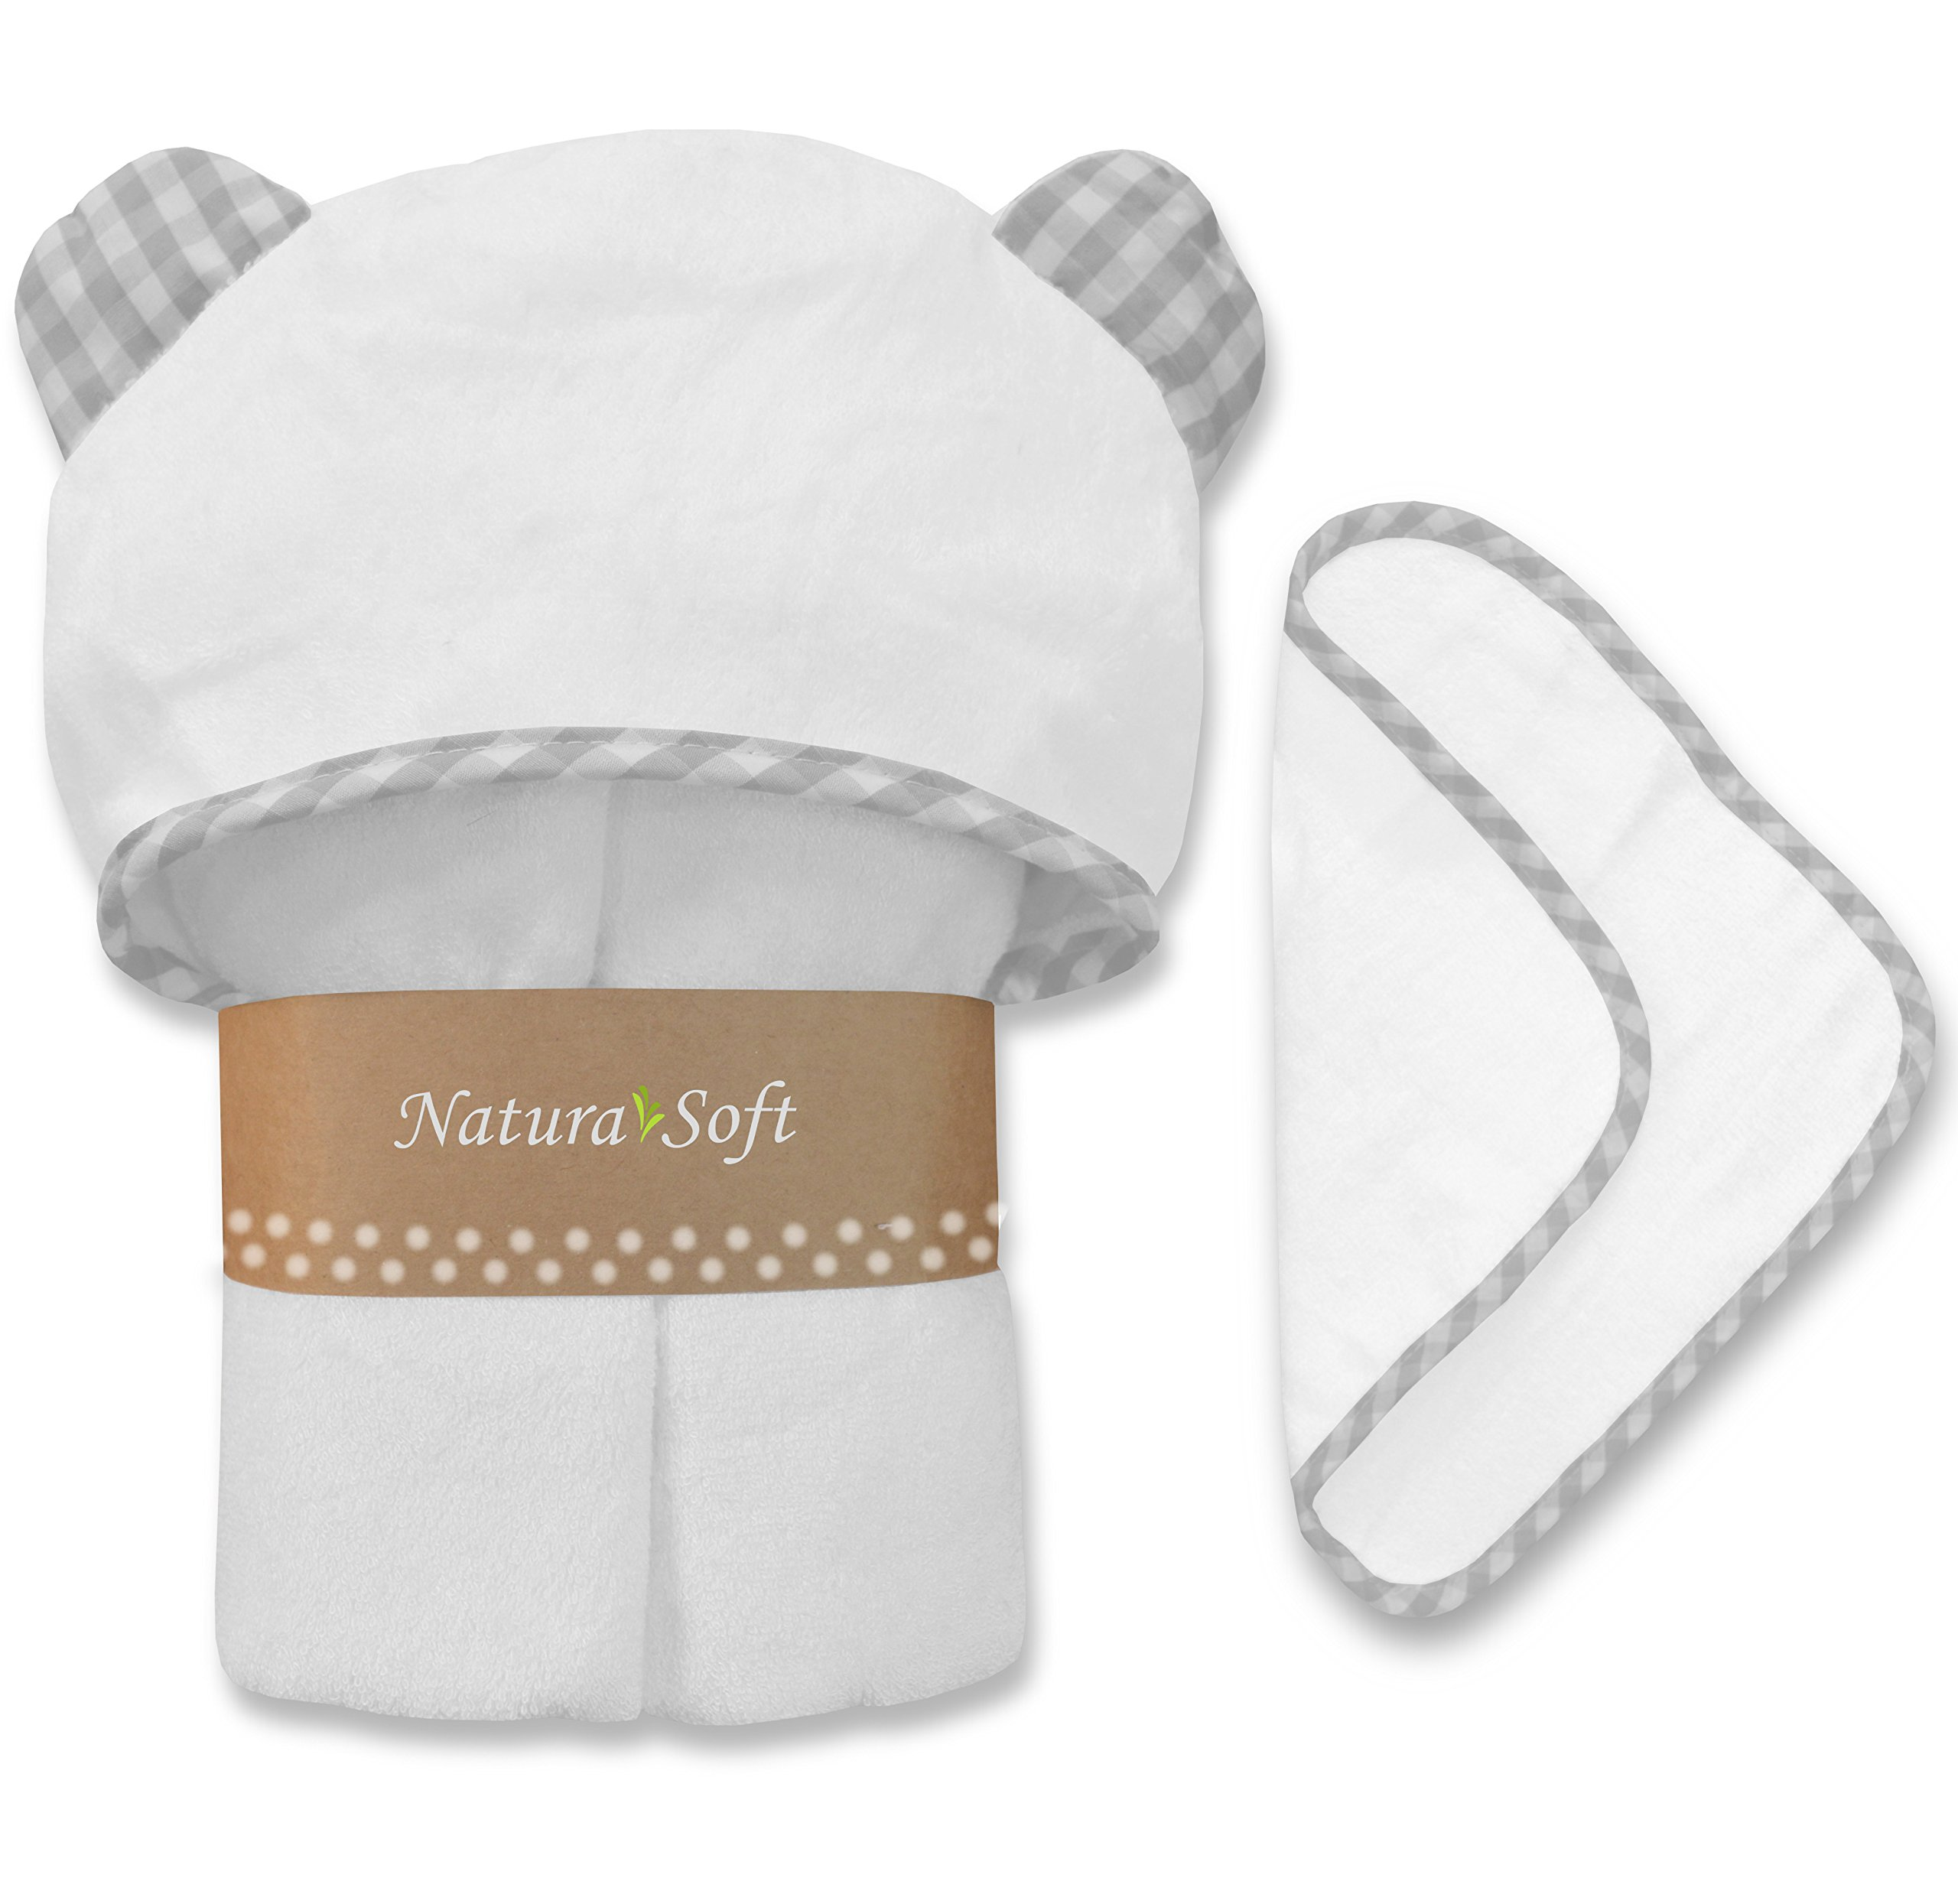 Premium Organic Baby Hooded Towel Set, 100% NaturaSoft Bamboo (Softer Than Cotton), Hypoallergenic Bath Towels with Hood & Washcloth for Newborn Babies, Toddler, Boys & Girls (Grey)